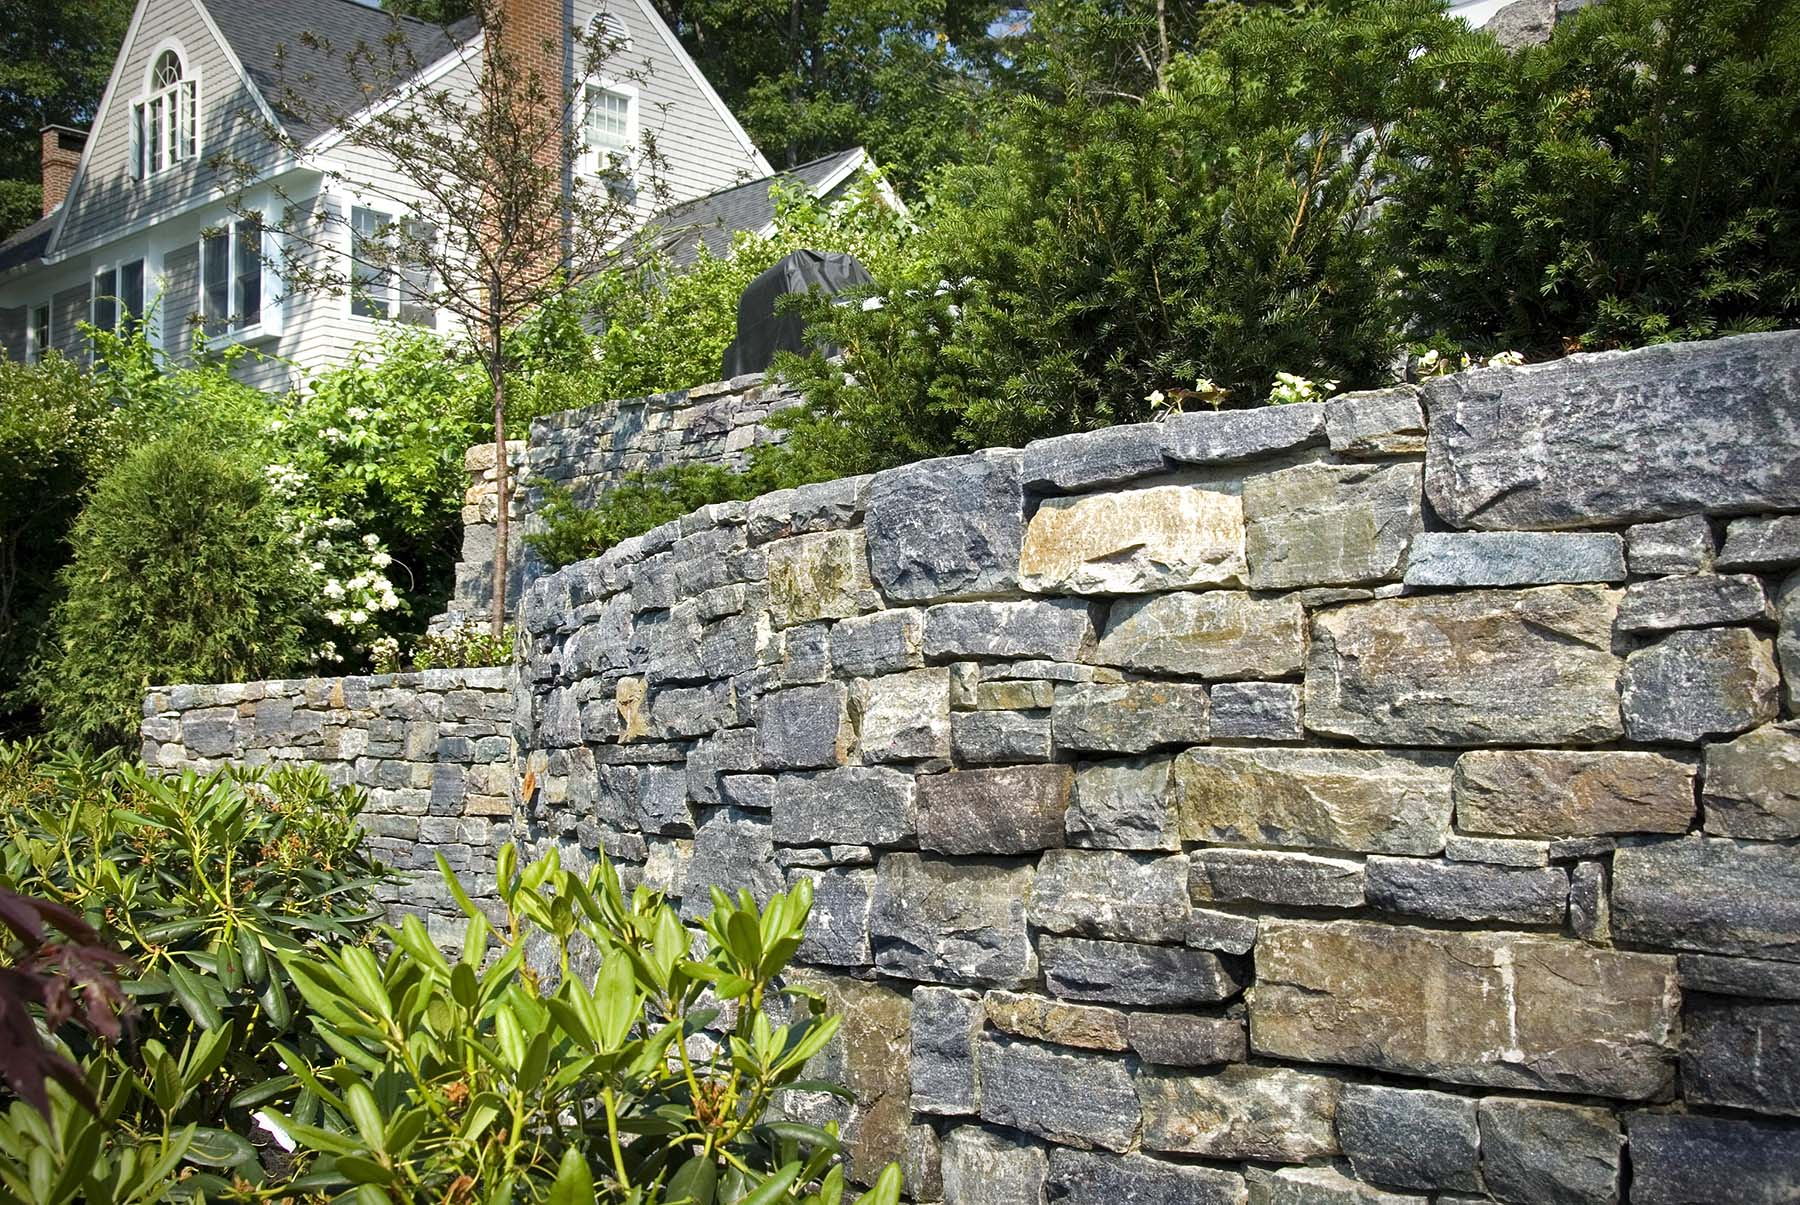 natural Adirondack stone wall by residential home